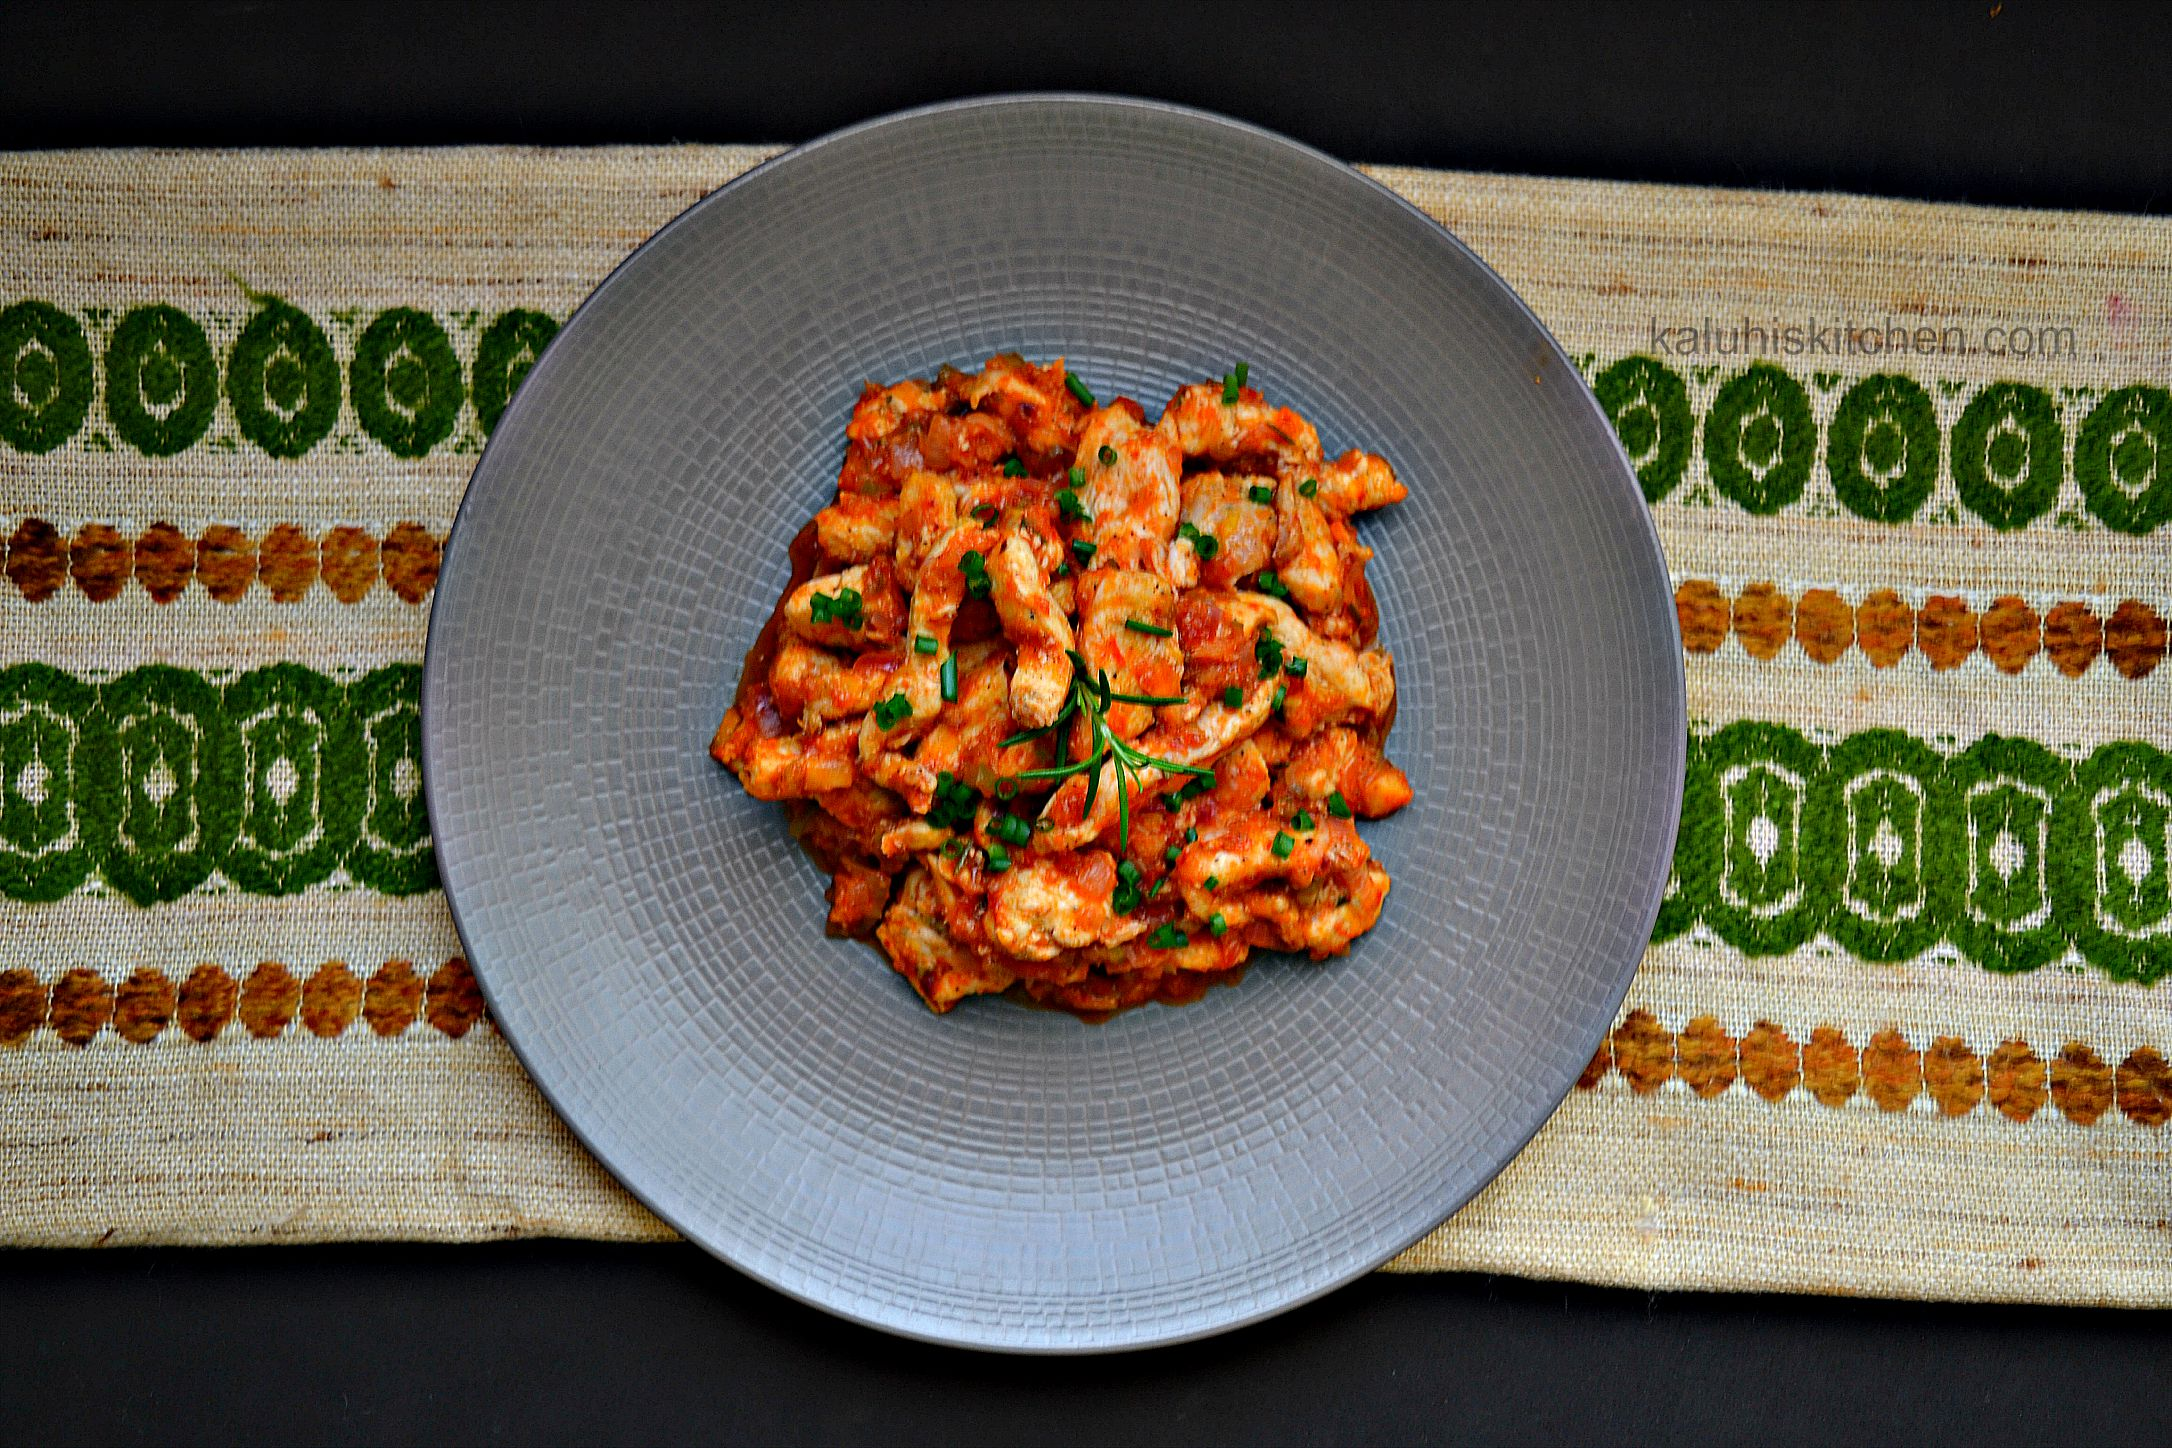 kaluhiskitchen.com_saucy orange and ginger chicken_best kenyan food bloggers